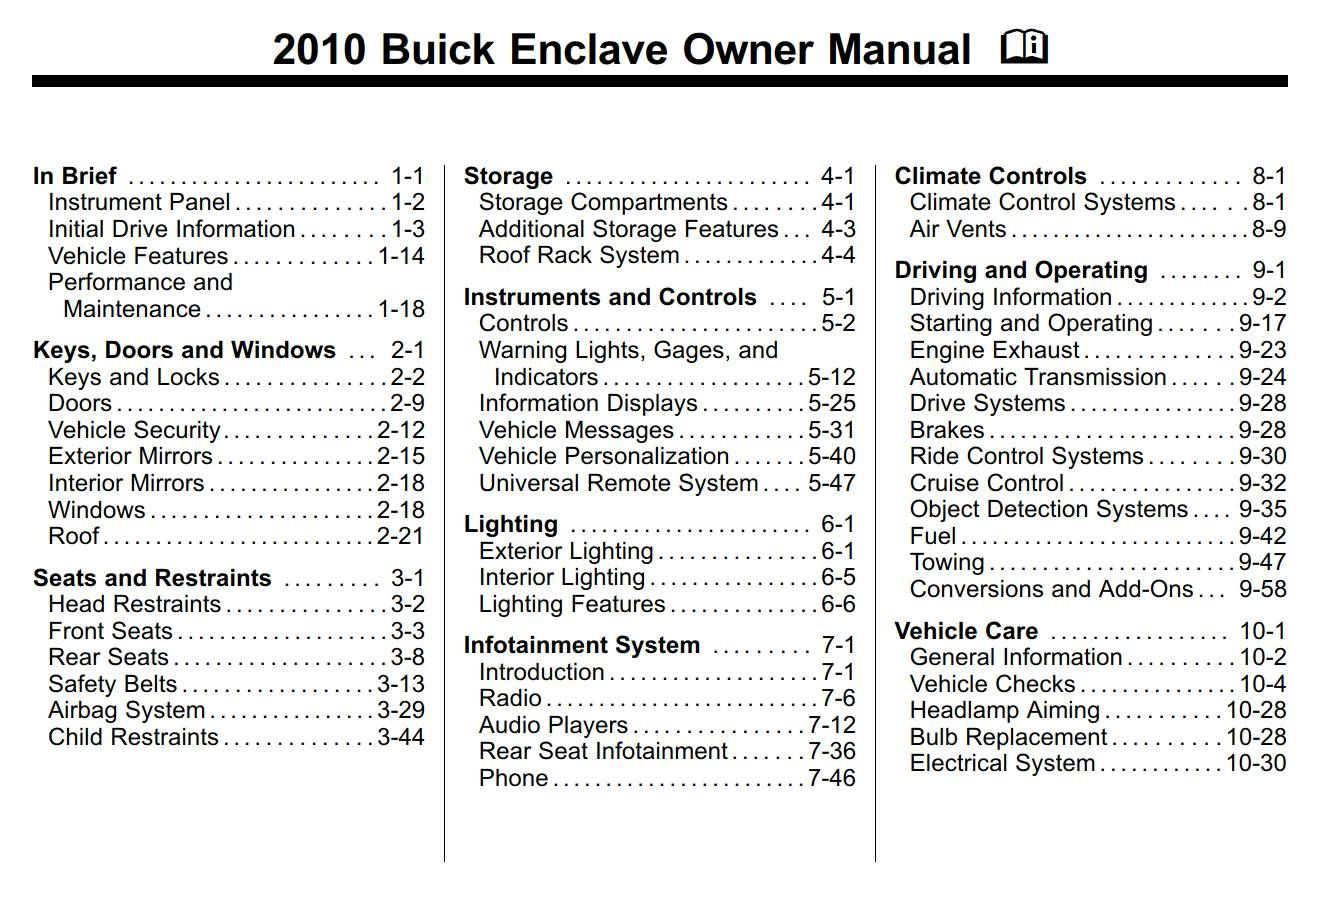 Buick Enclave 2010 Owner S Manual Has Been Published On Procarmanuals Com Https Procarmanuals Com Buick Encla Owners Manuals Buick Enclave Chevrolet Traverse